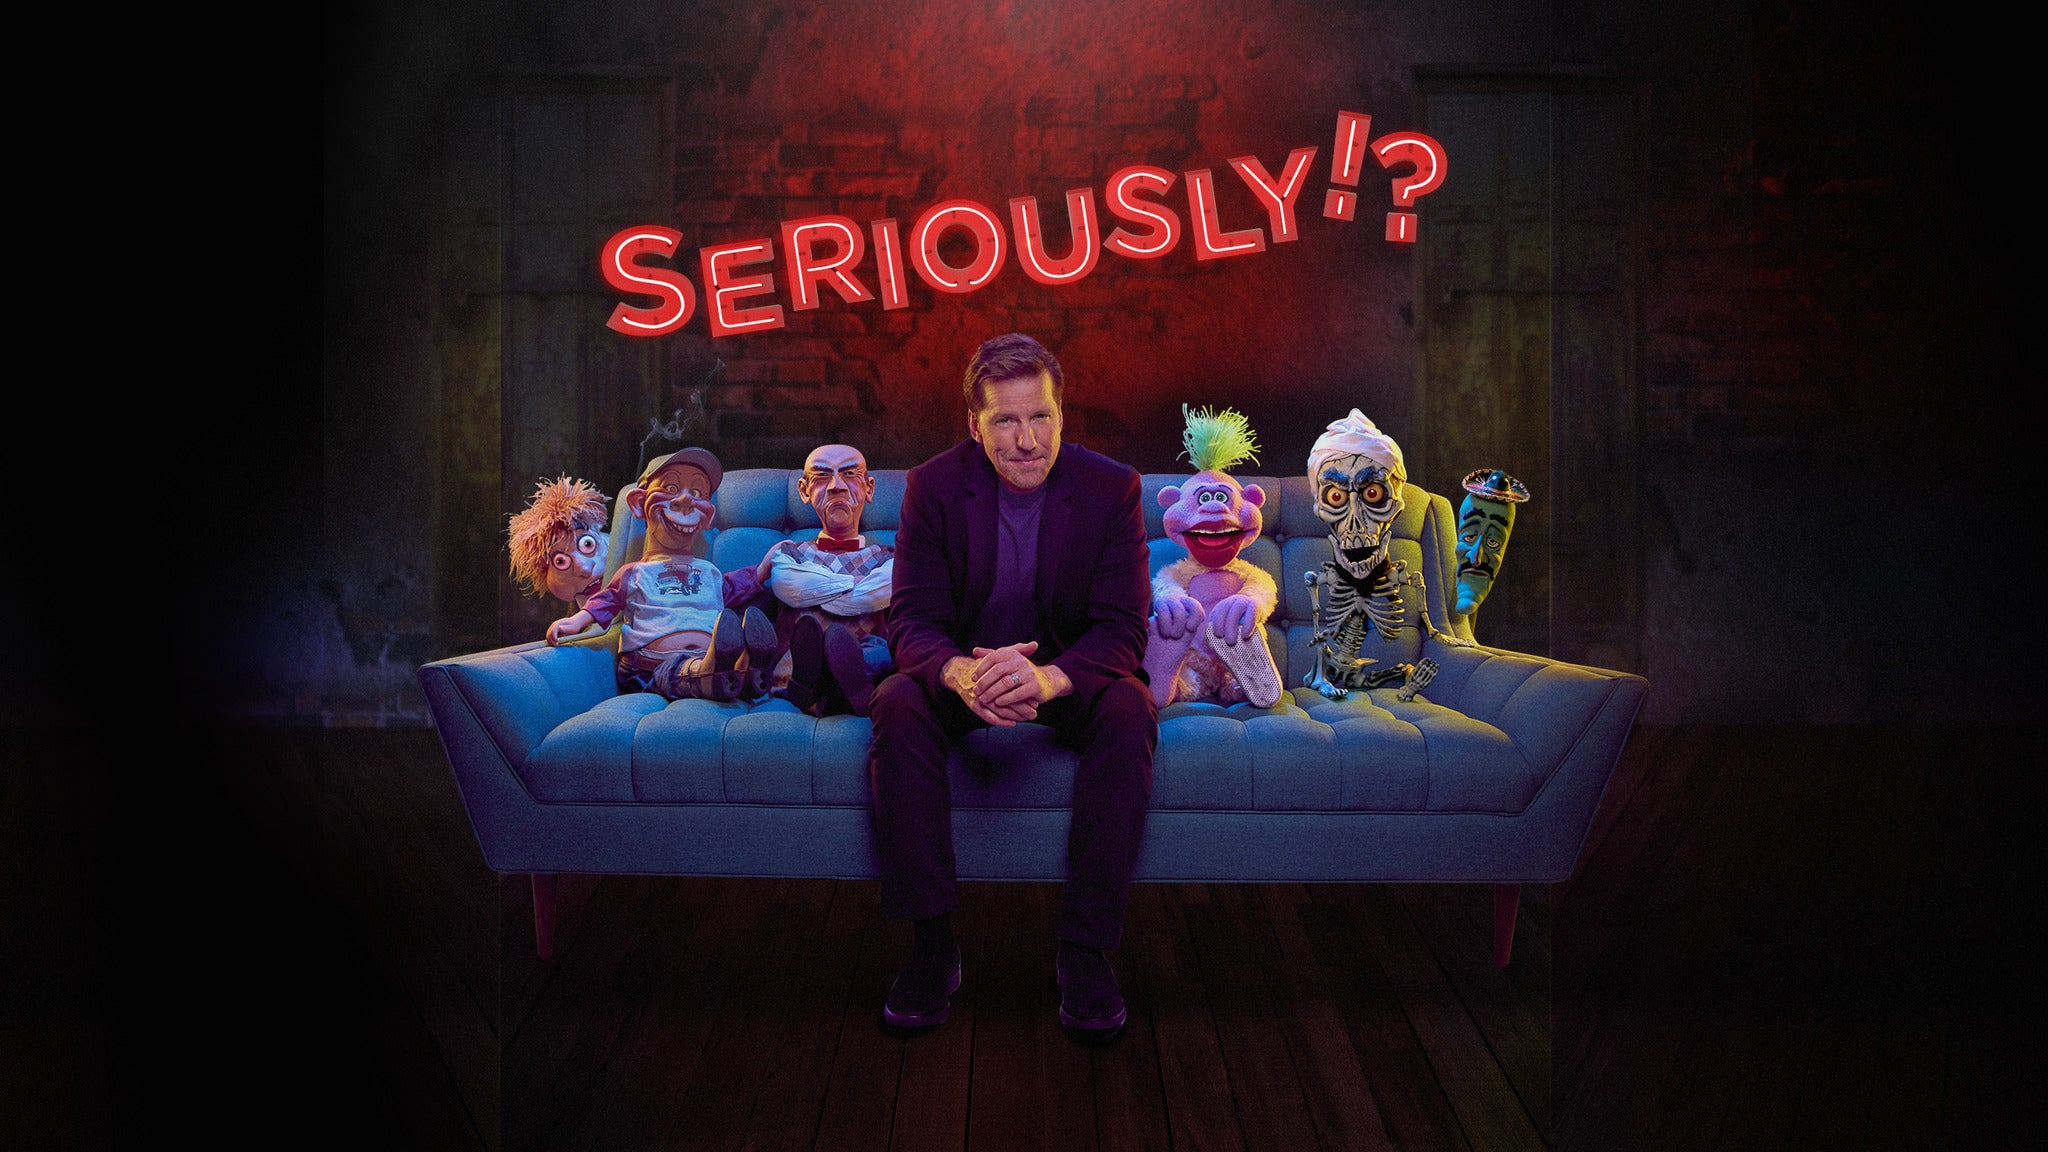 Jeff Dunham: Seriously pre-sale password for early tickets in Rio Rancho